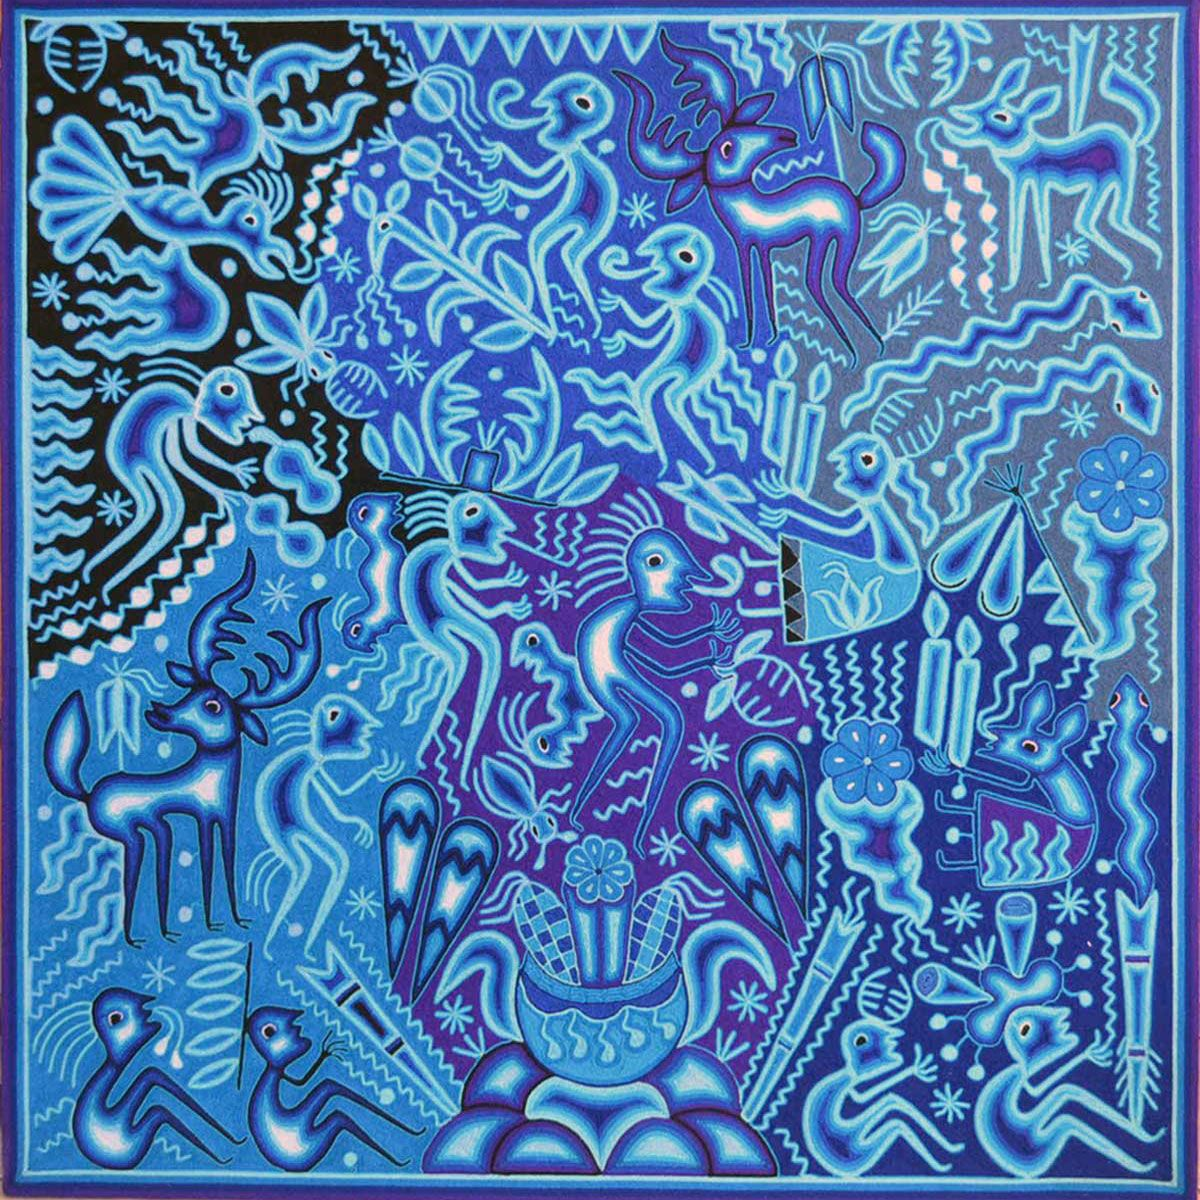 Design Yarn Art hilaria chavez carillo premier huichol yarn painting ceremony for protection of children